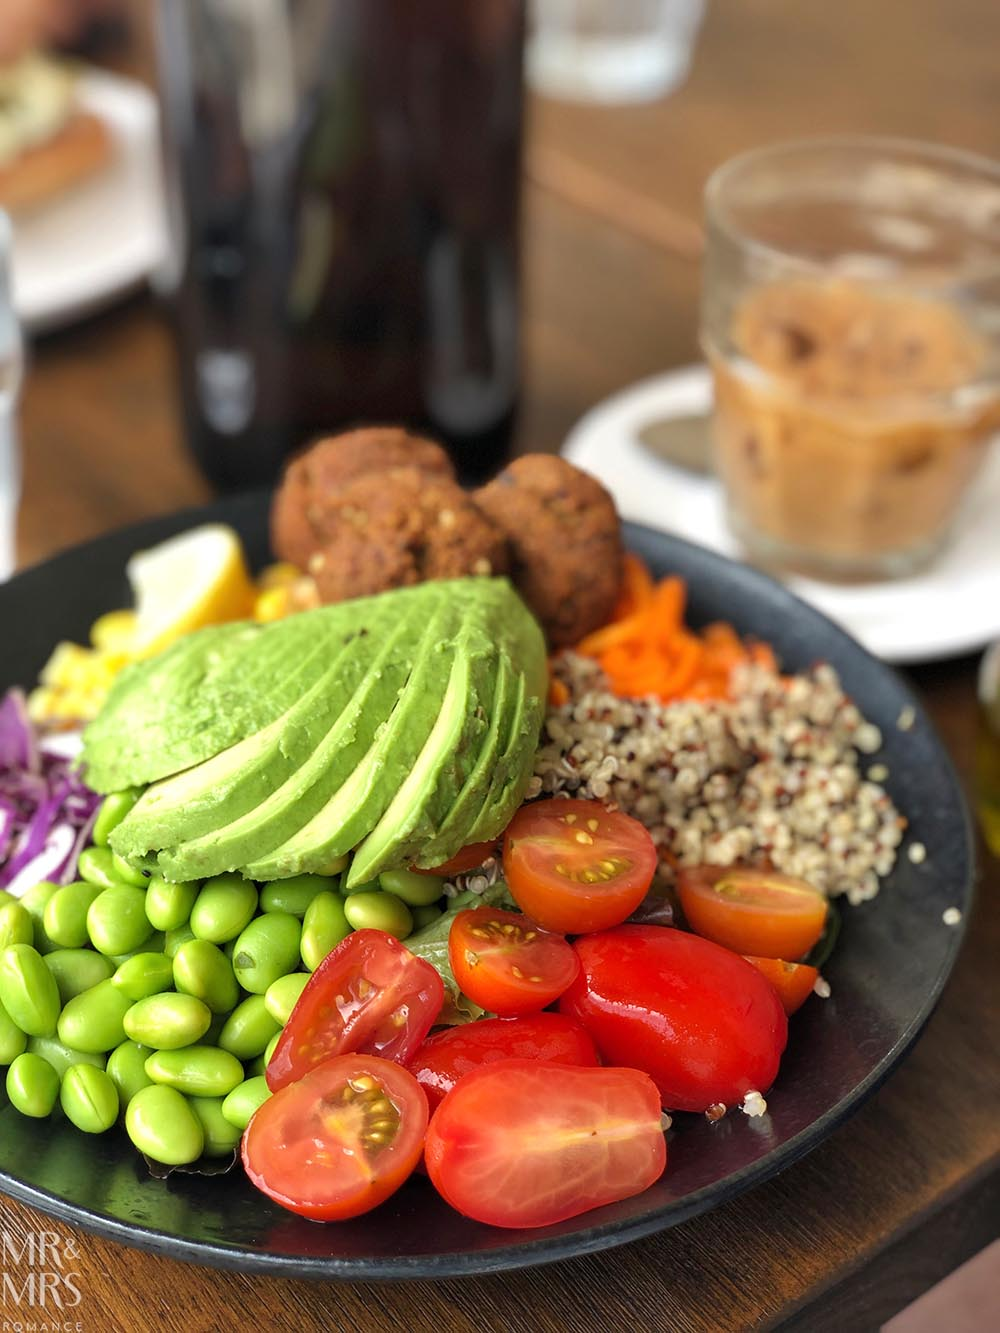 Euforia Cafe, Balmain East - Buddha bowl